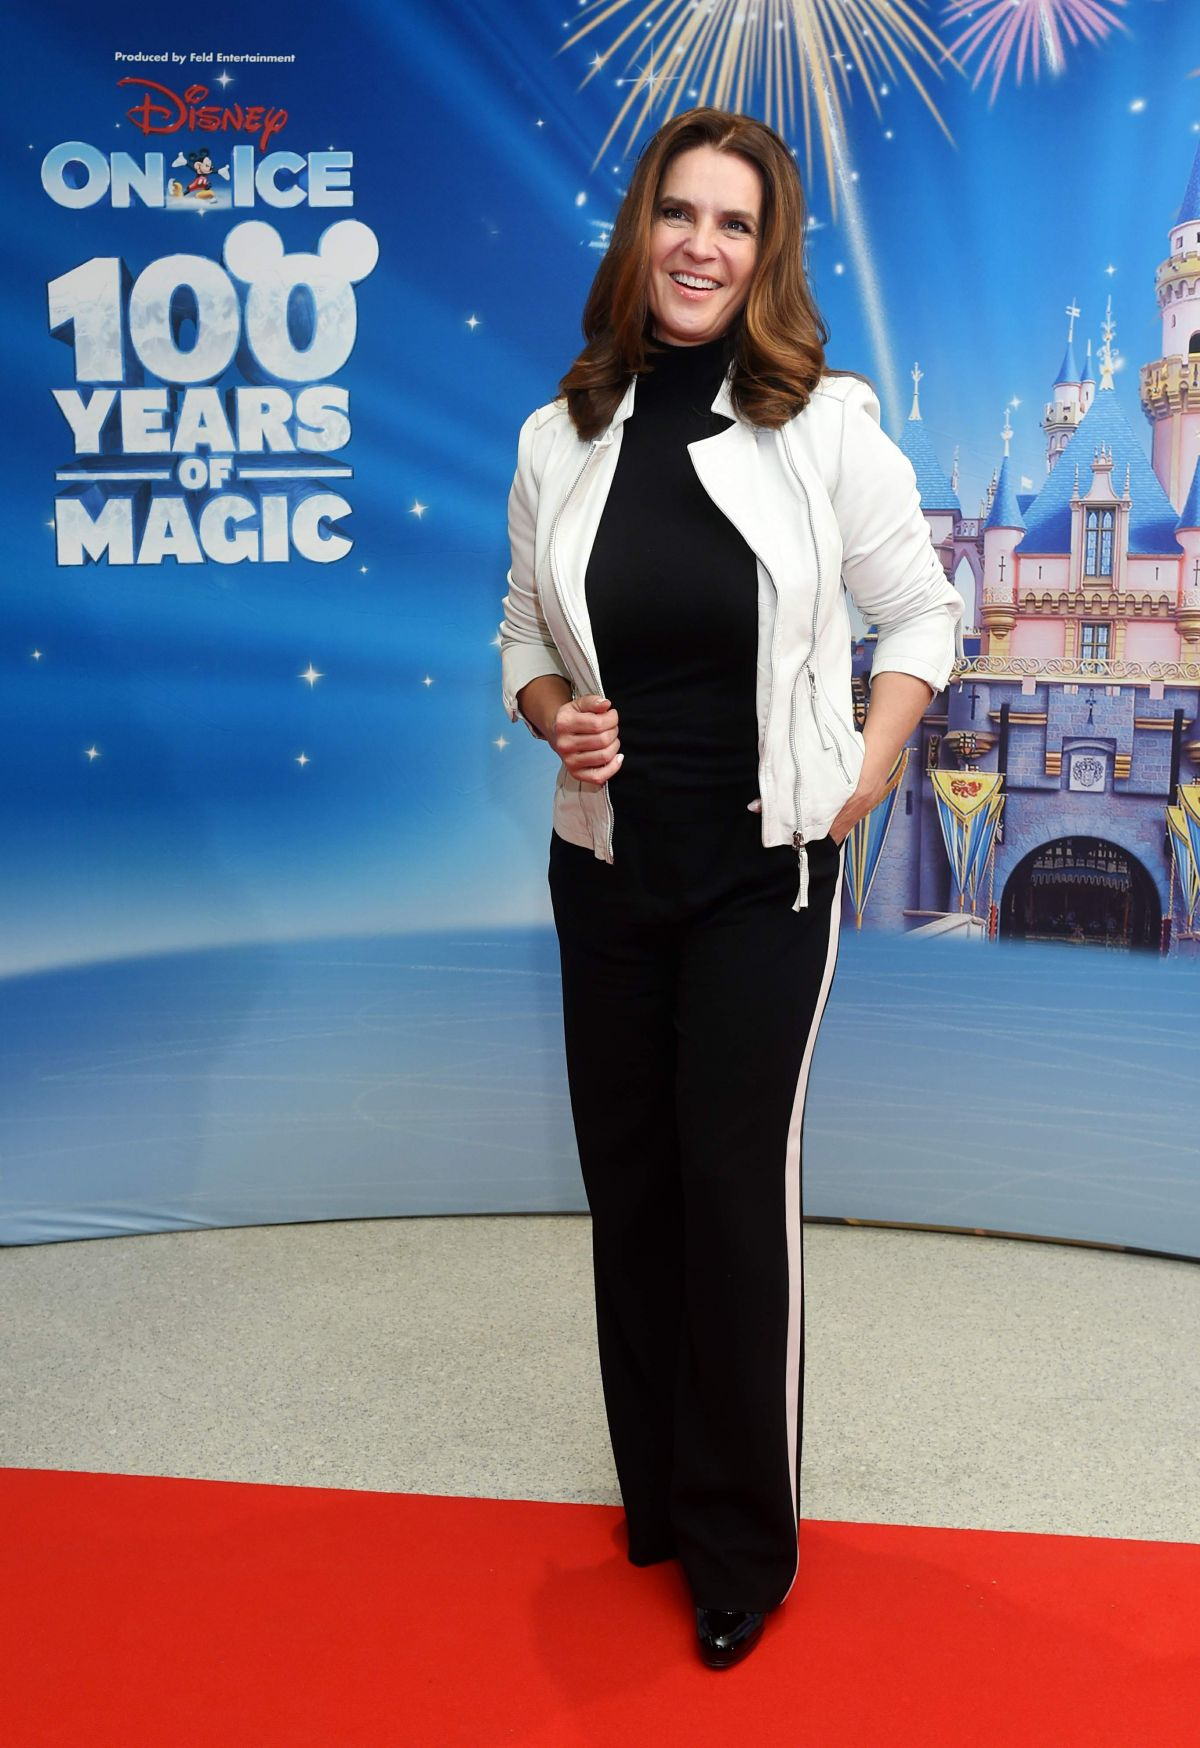 KATARINA WITT at Disney on Ice Premiere in Munich 10/20/2016